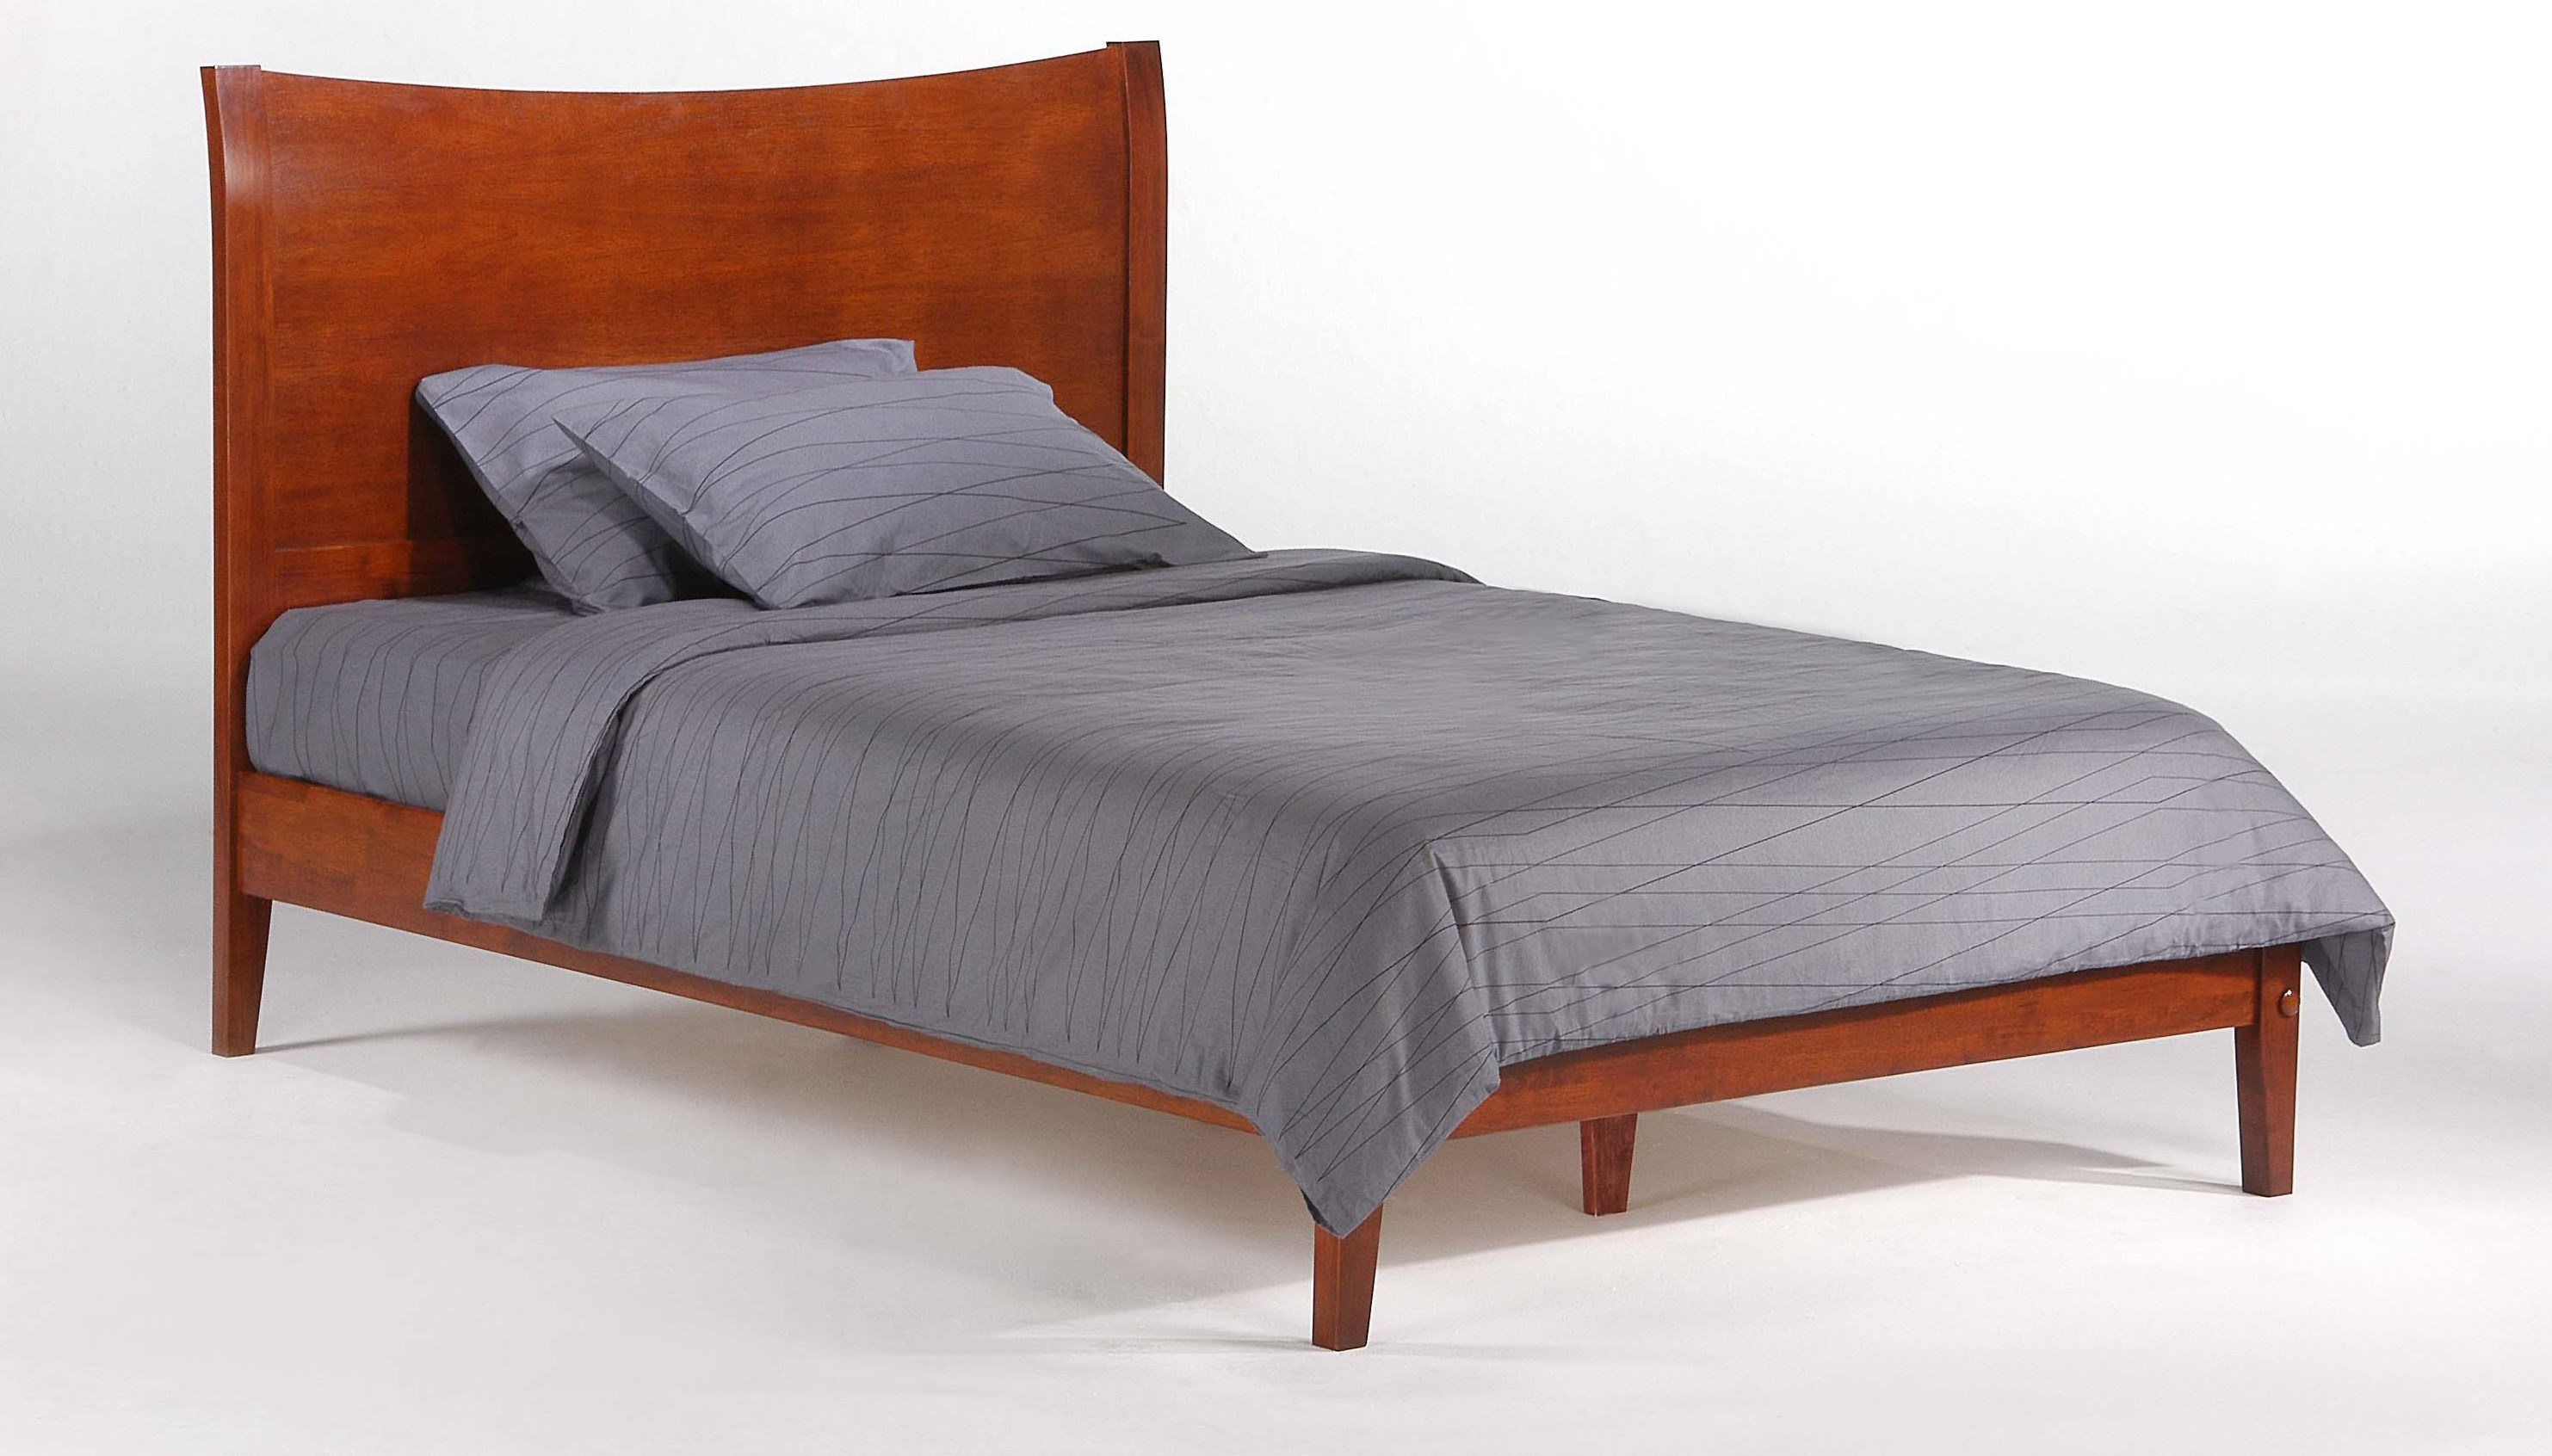 Blackpepper - Cherry Full Bed by Pacific Manufacturing at SlumberWorld